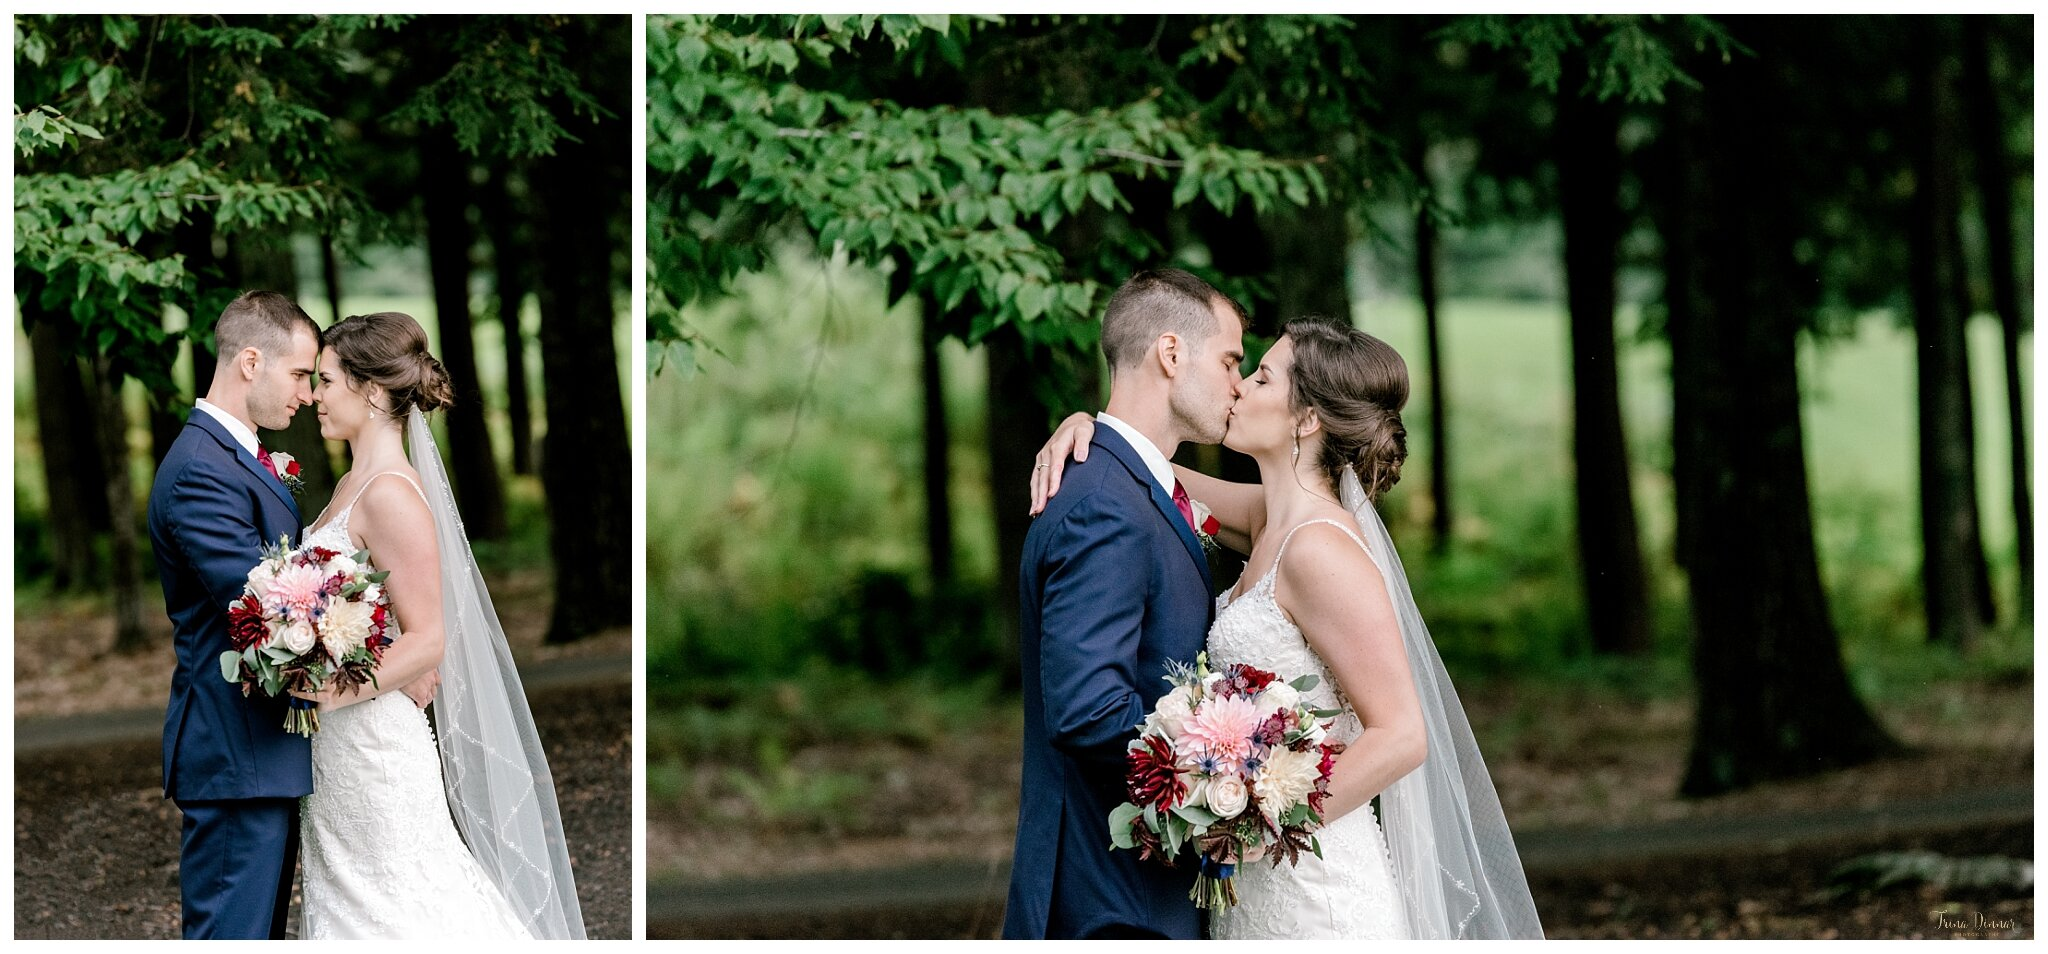 Country Club Wedding Photography in Falmouth, Maine.